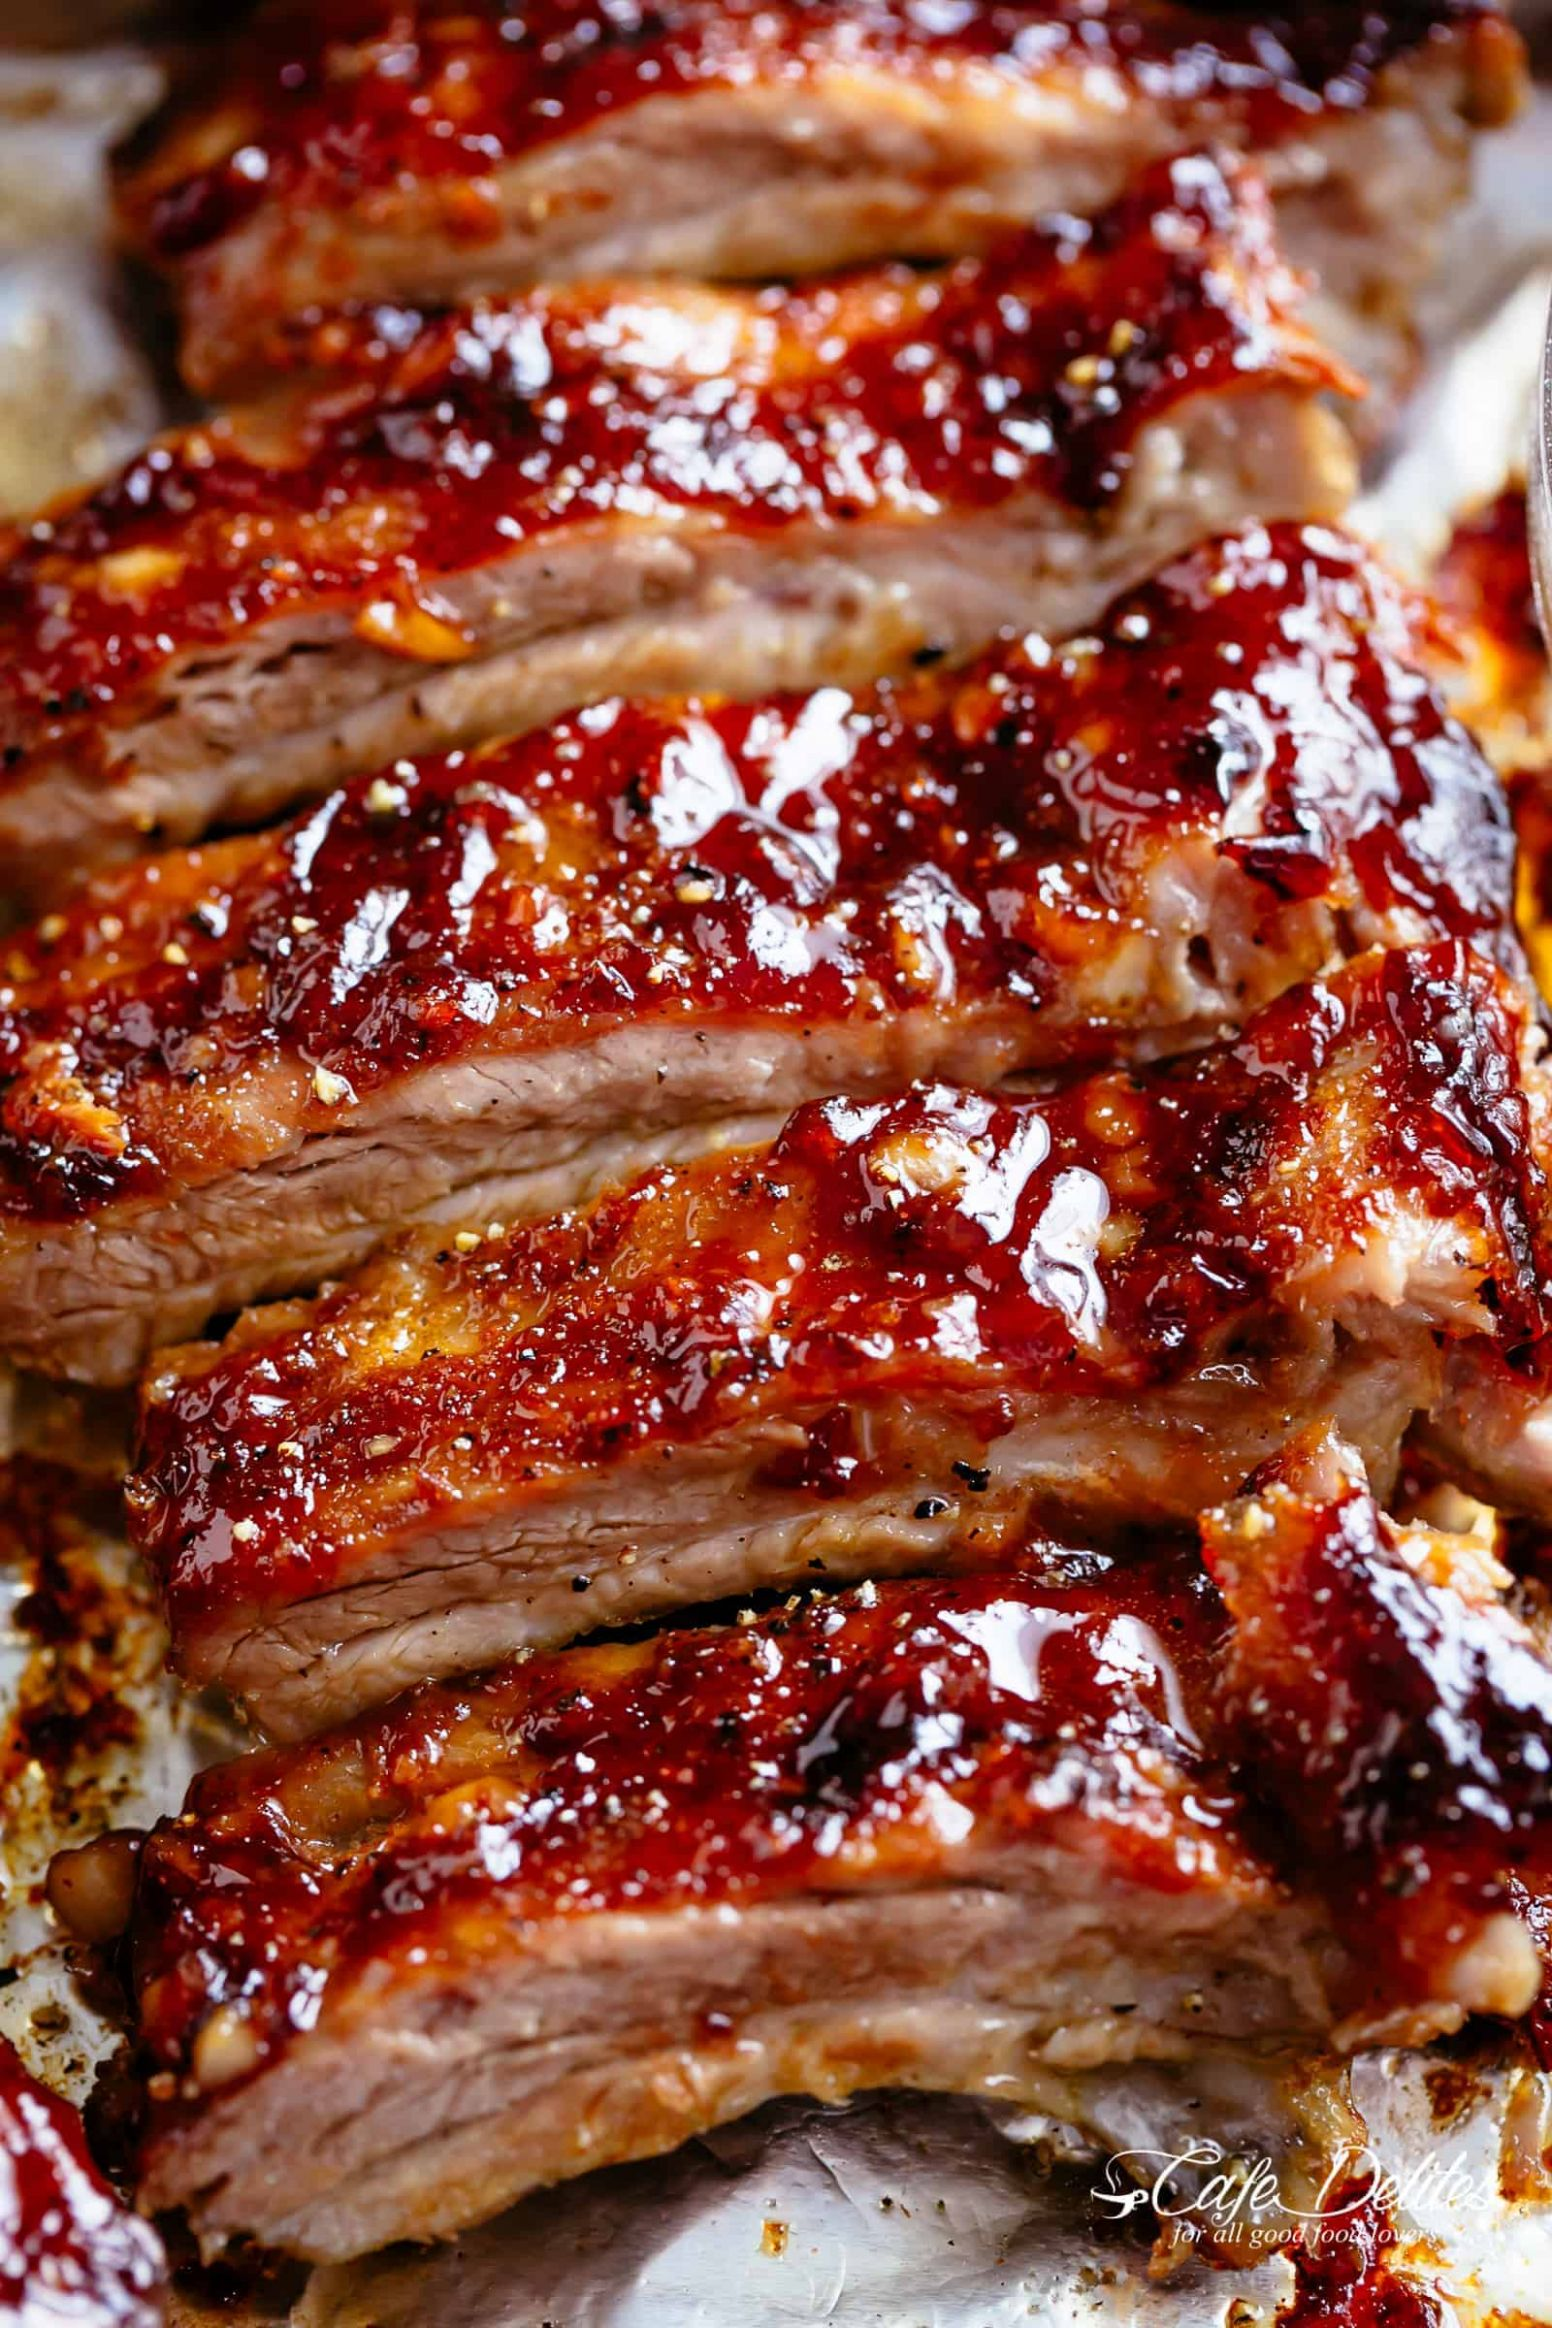 Oven Barbecue Ribs - Recipes Pork Back Ribs